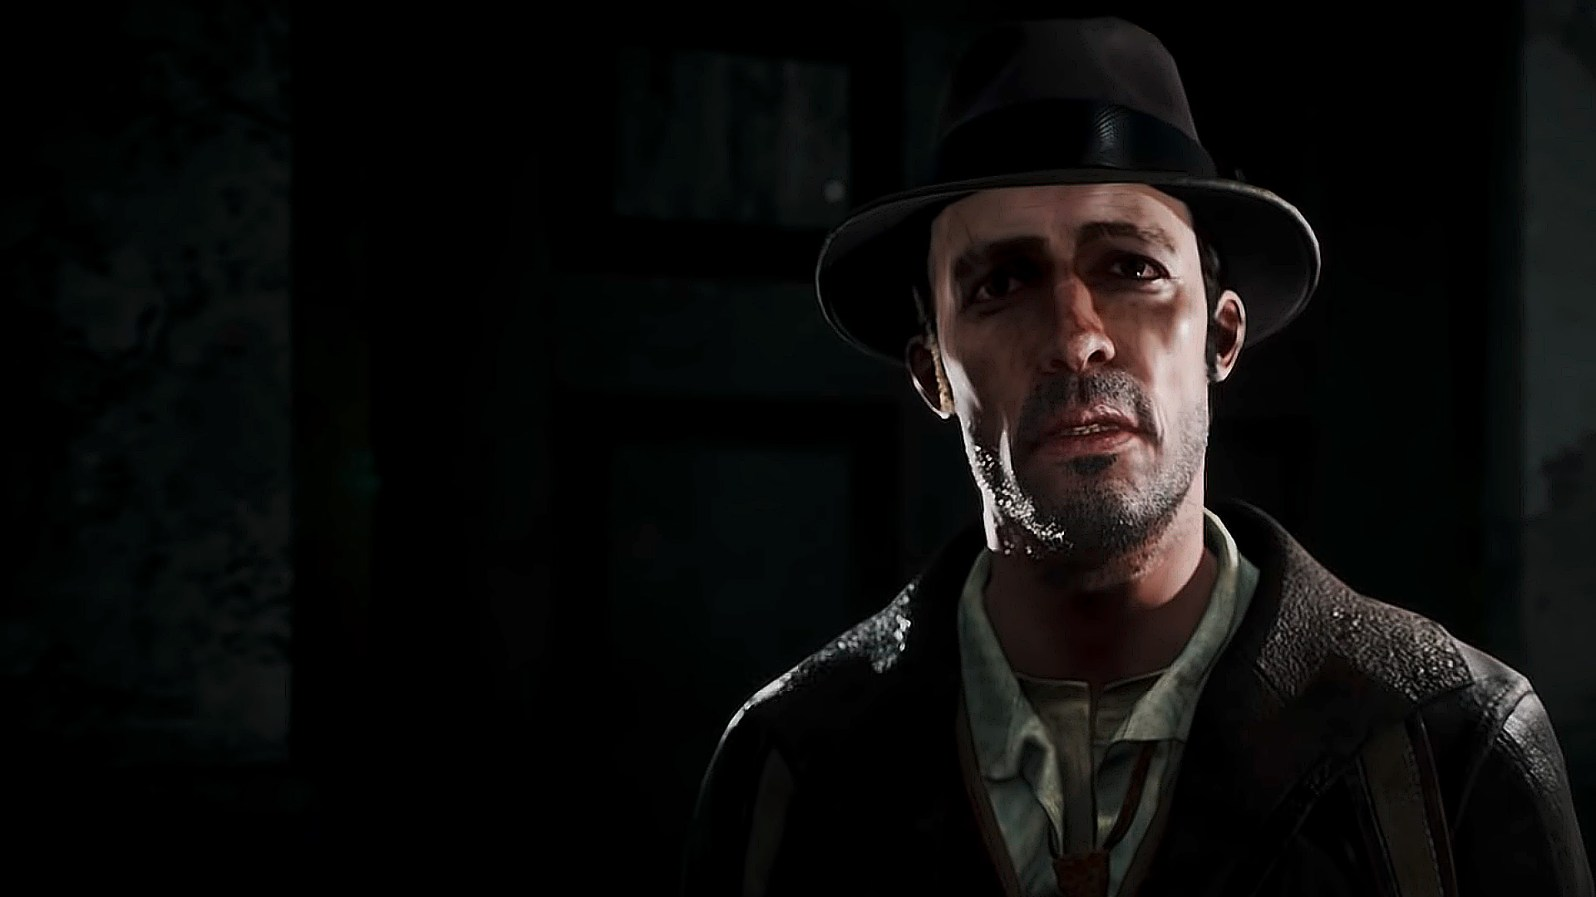 Quelle: frogwares.com - The Sinking City